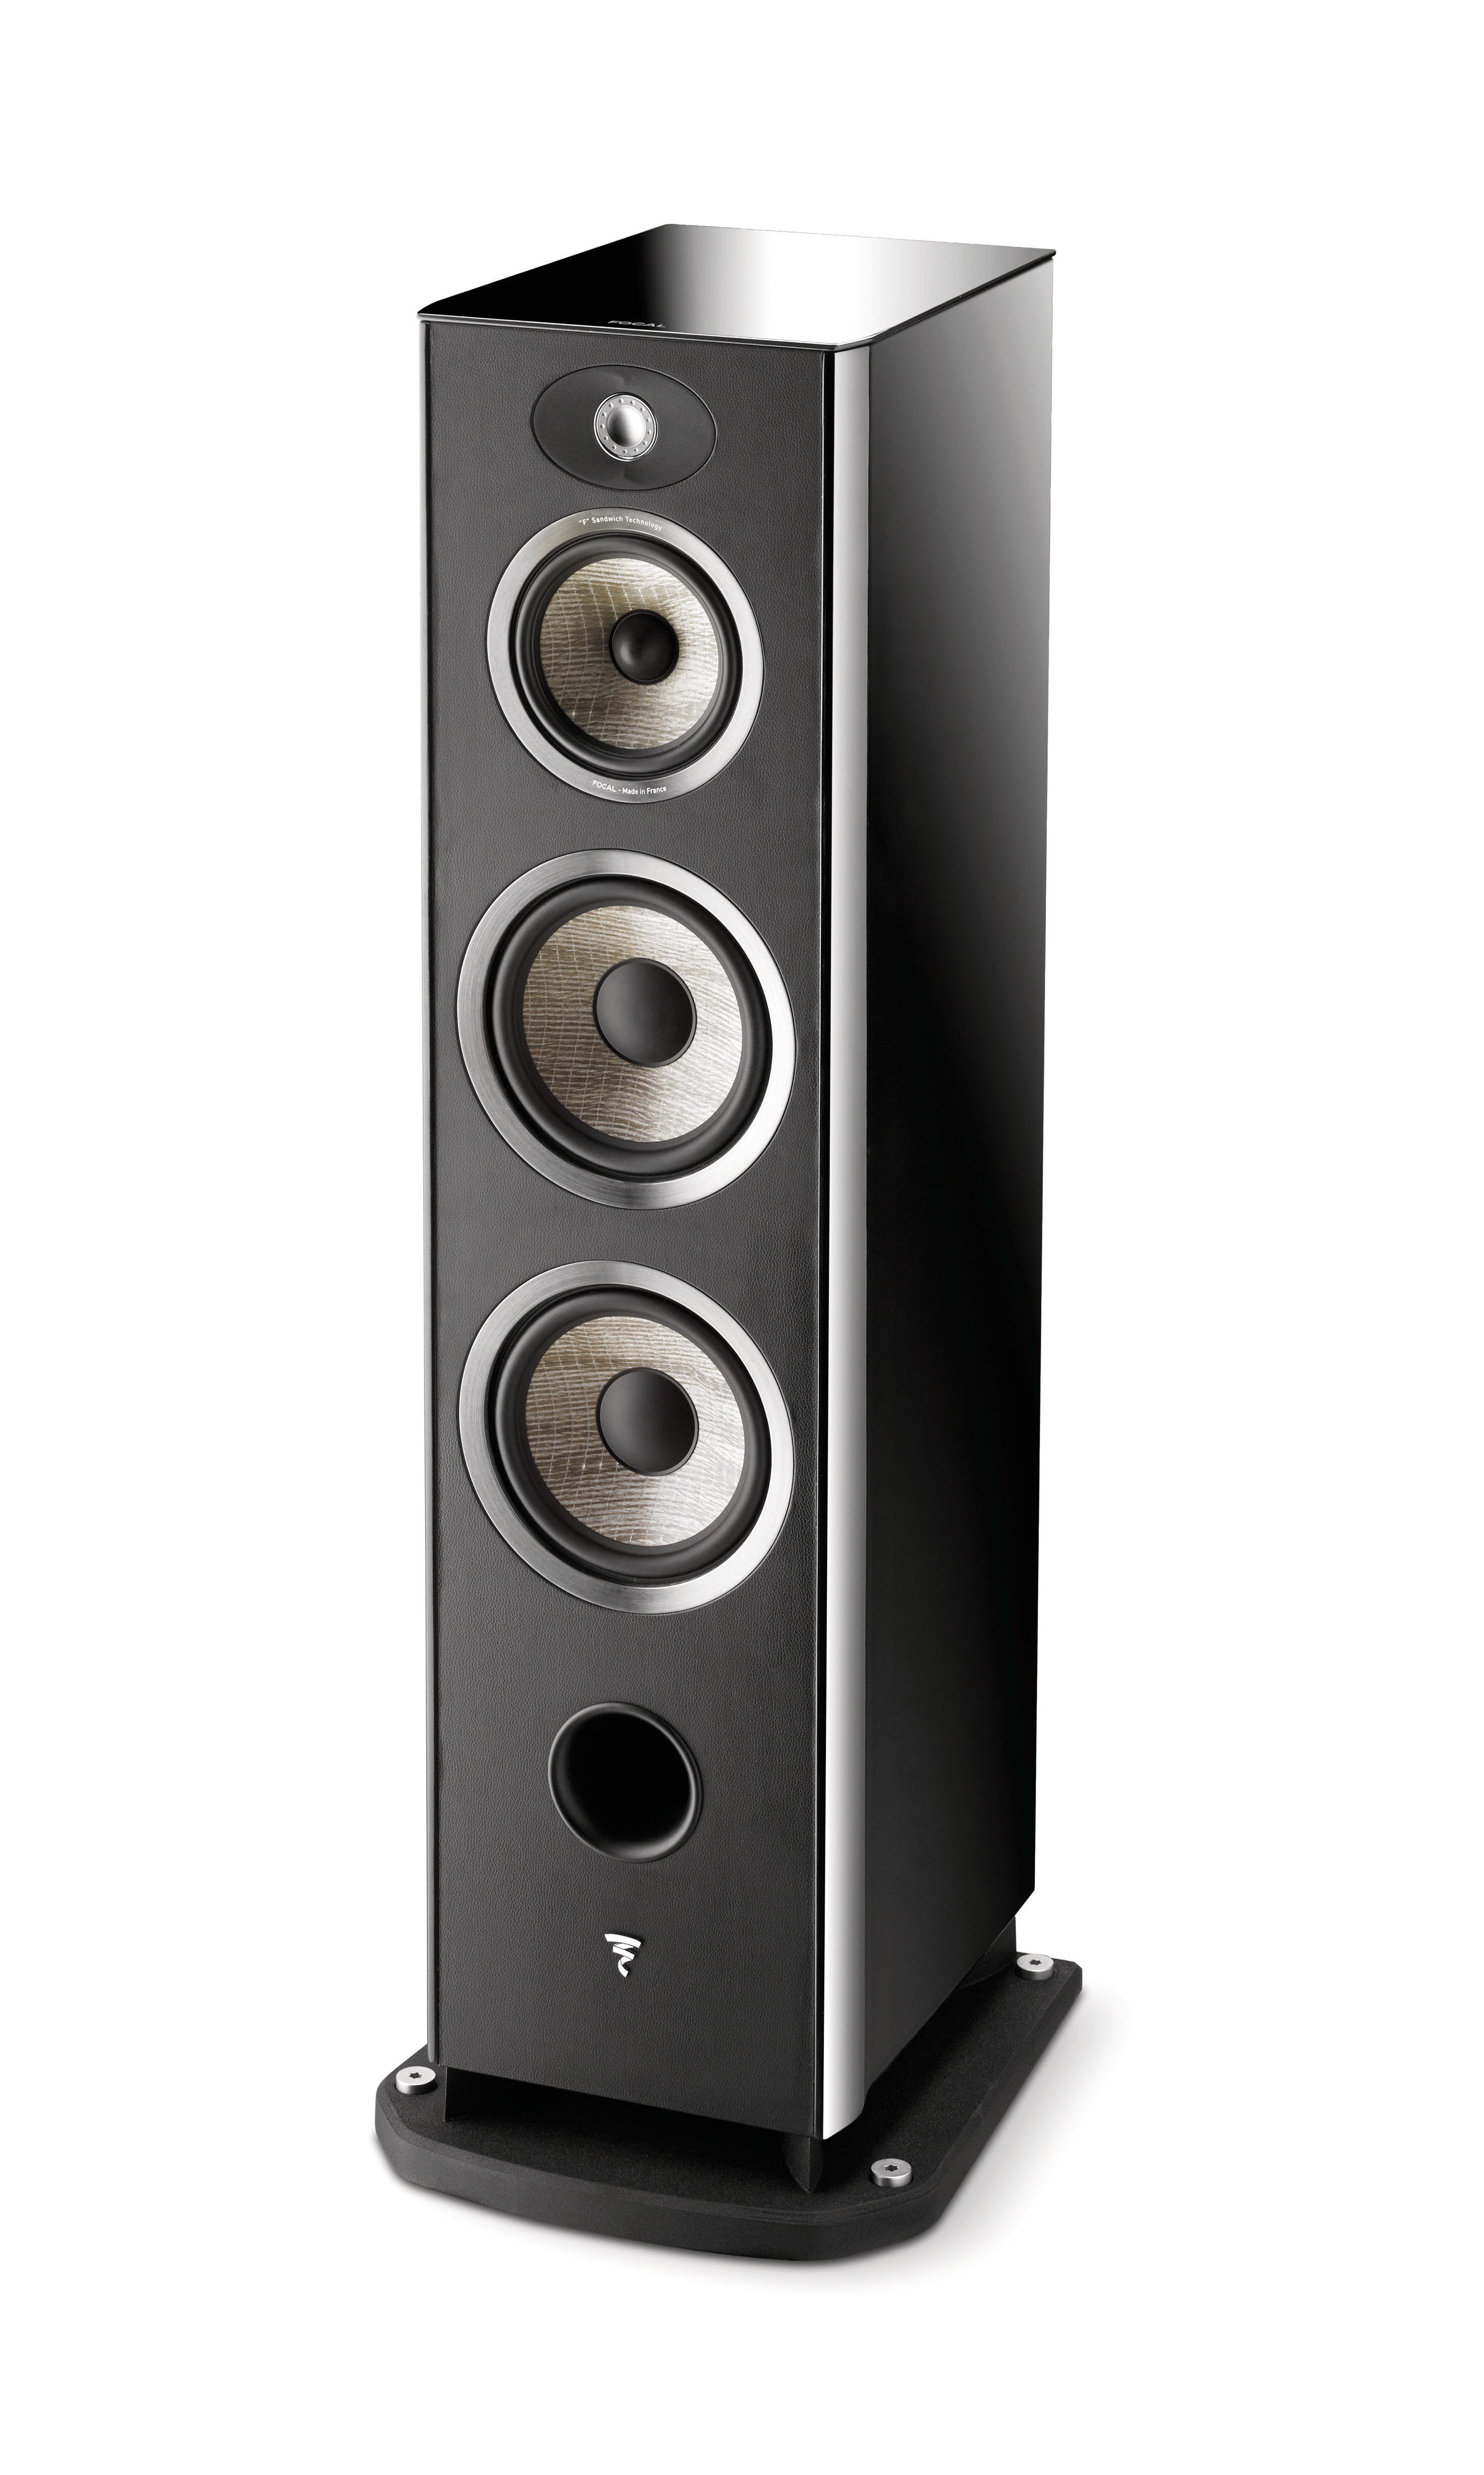 focal aria 900 affordable luxury audioplus news and views. Black Bedroom Furniture Sets. Home Design Ideas